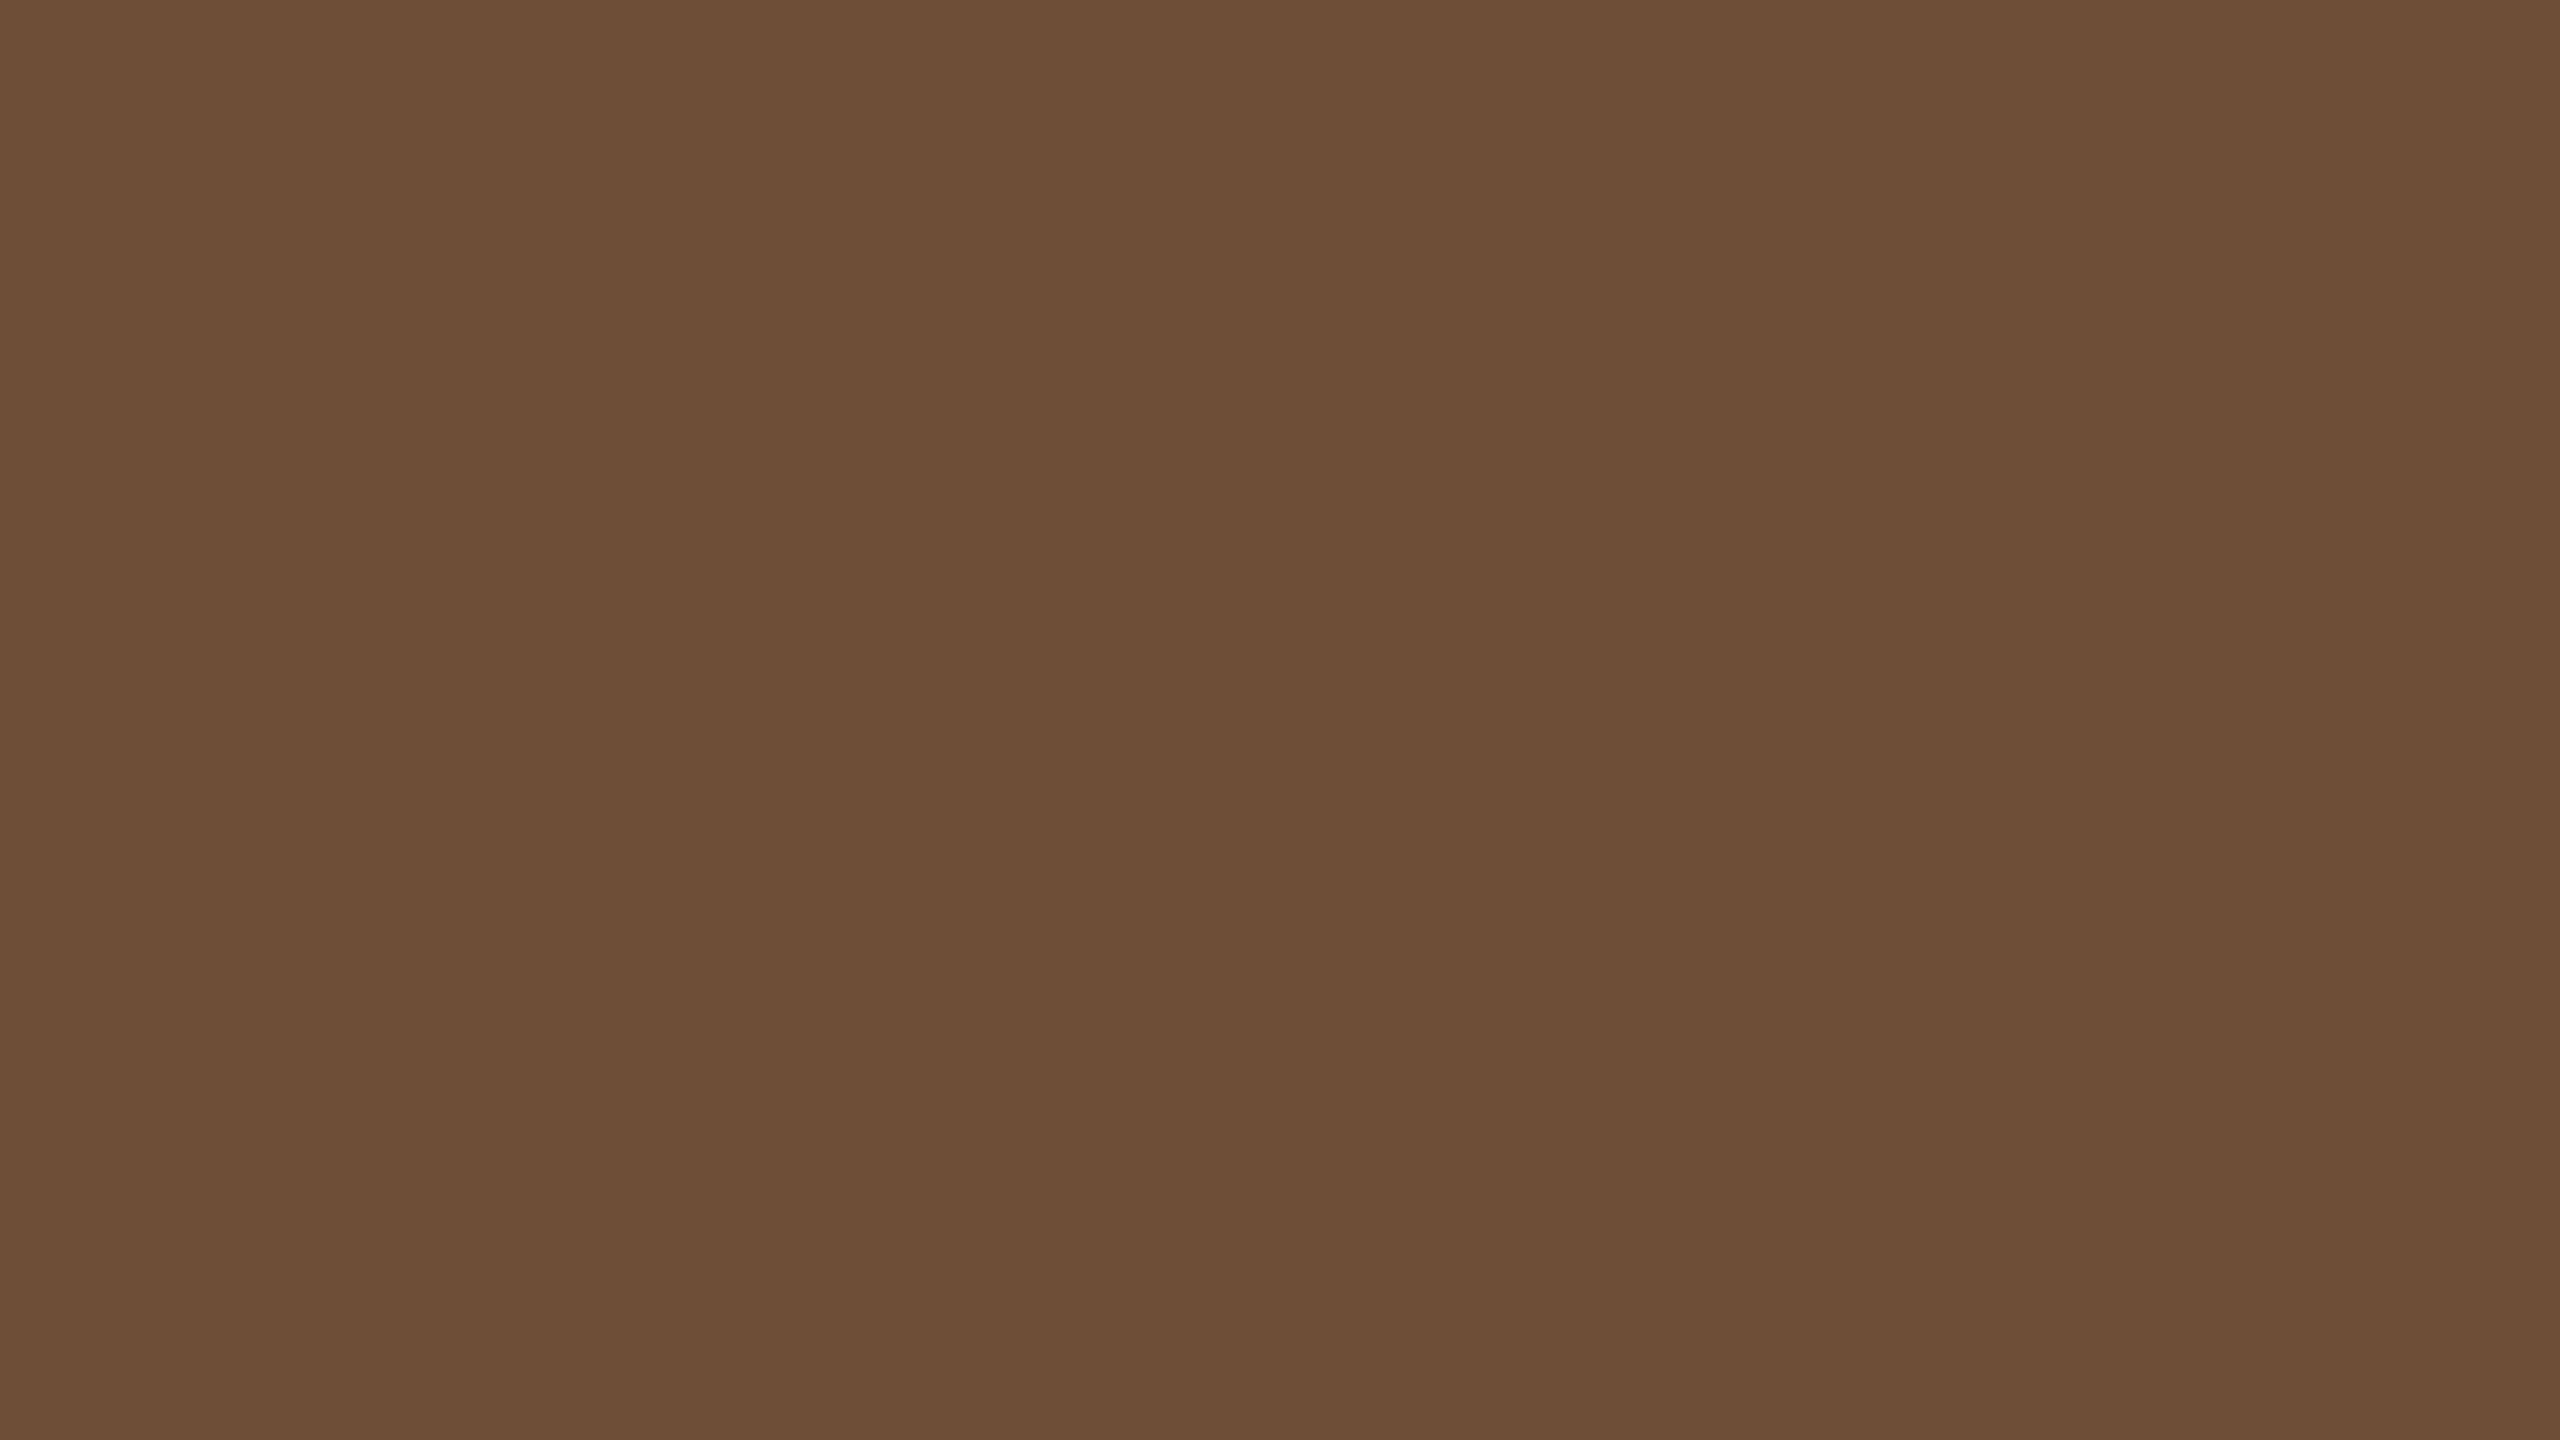 Fall Colored Background Wallpaper 2560x1440 Tuscan Brown Solid Color Background